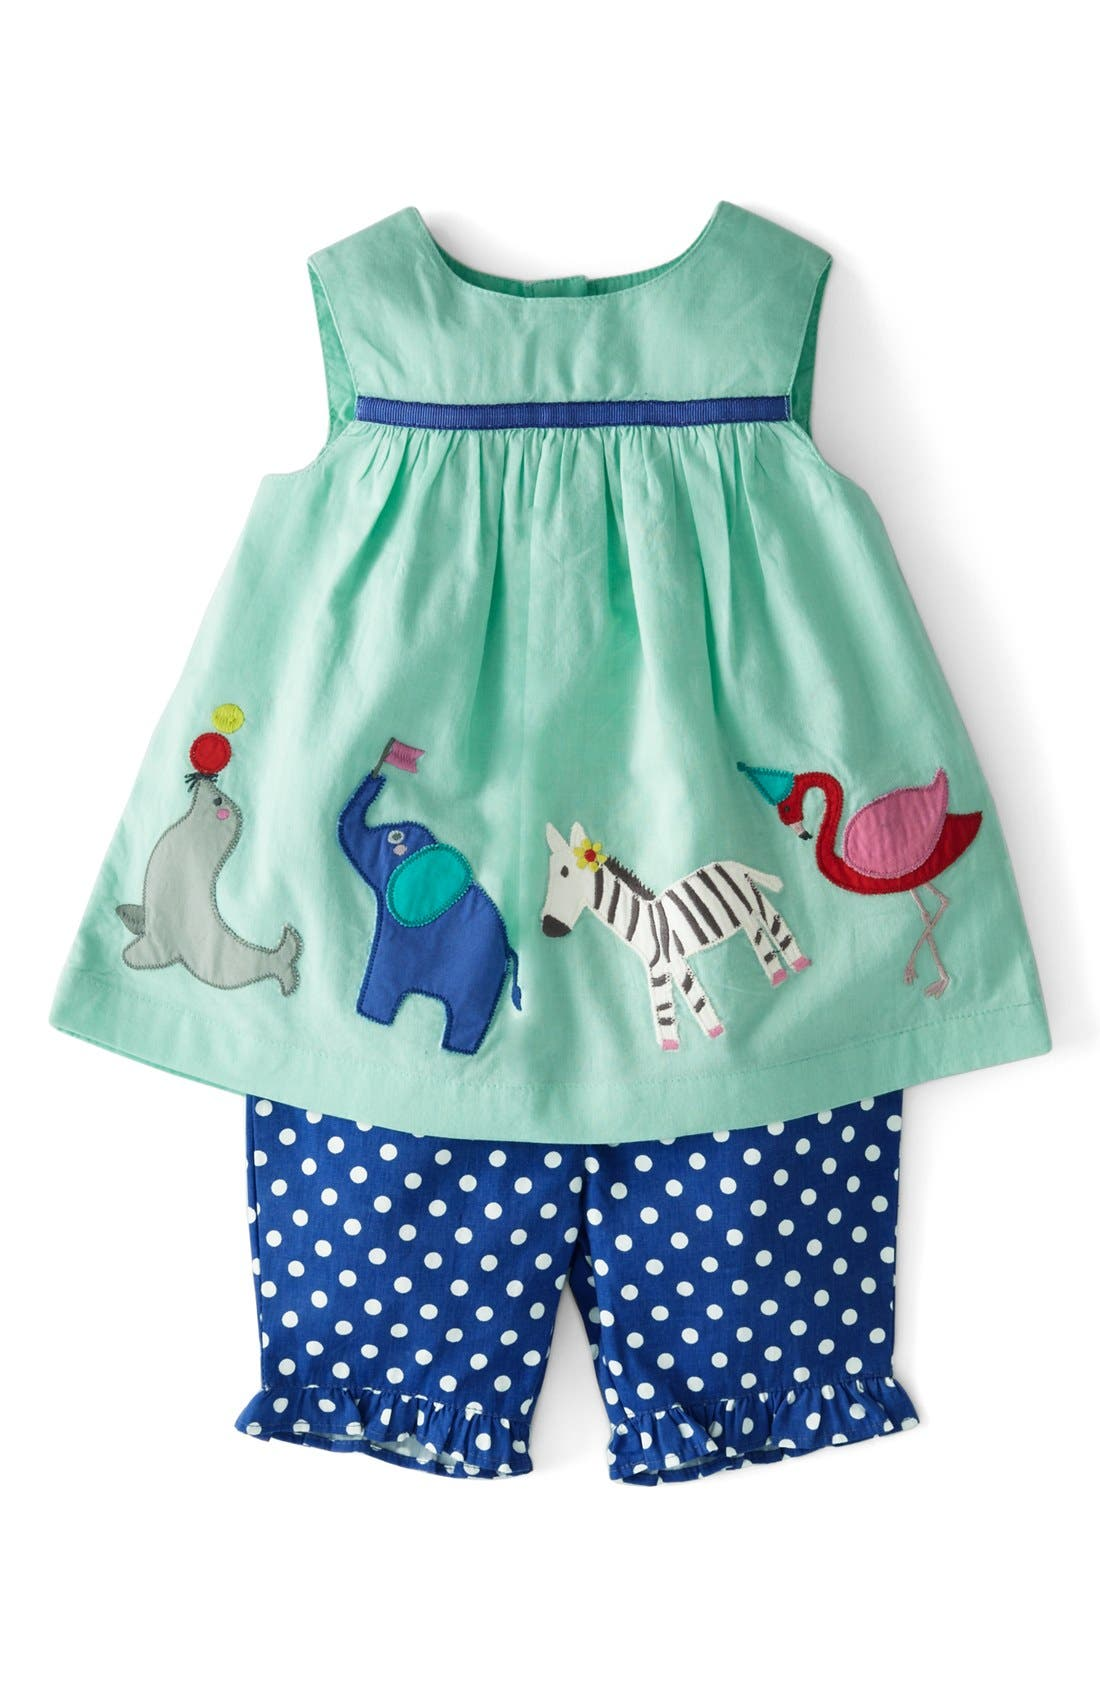 Main Image - Mini Boden 'Summer Play Set' Embroidered Appliqué Top & Crop Pants (Baby Girls)